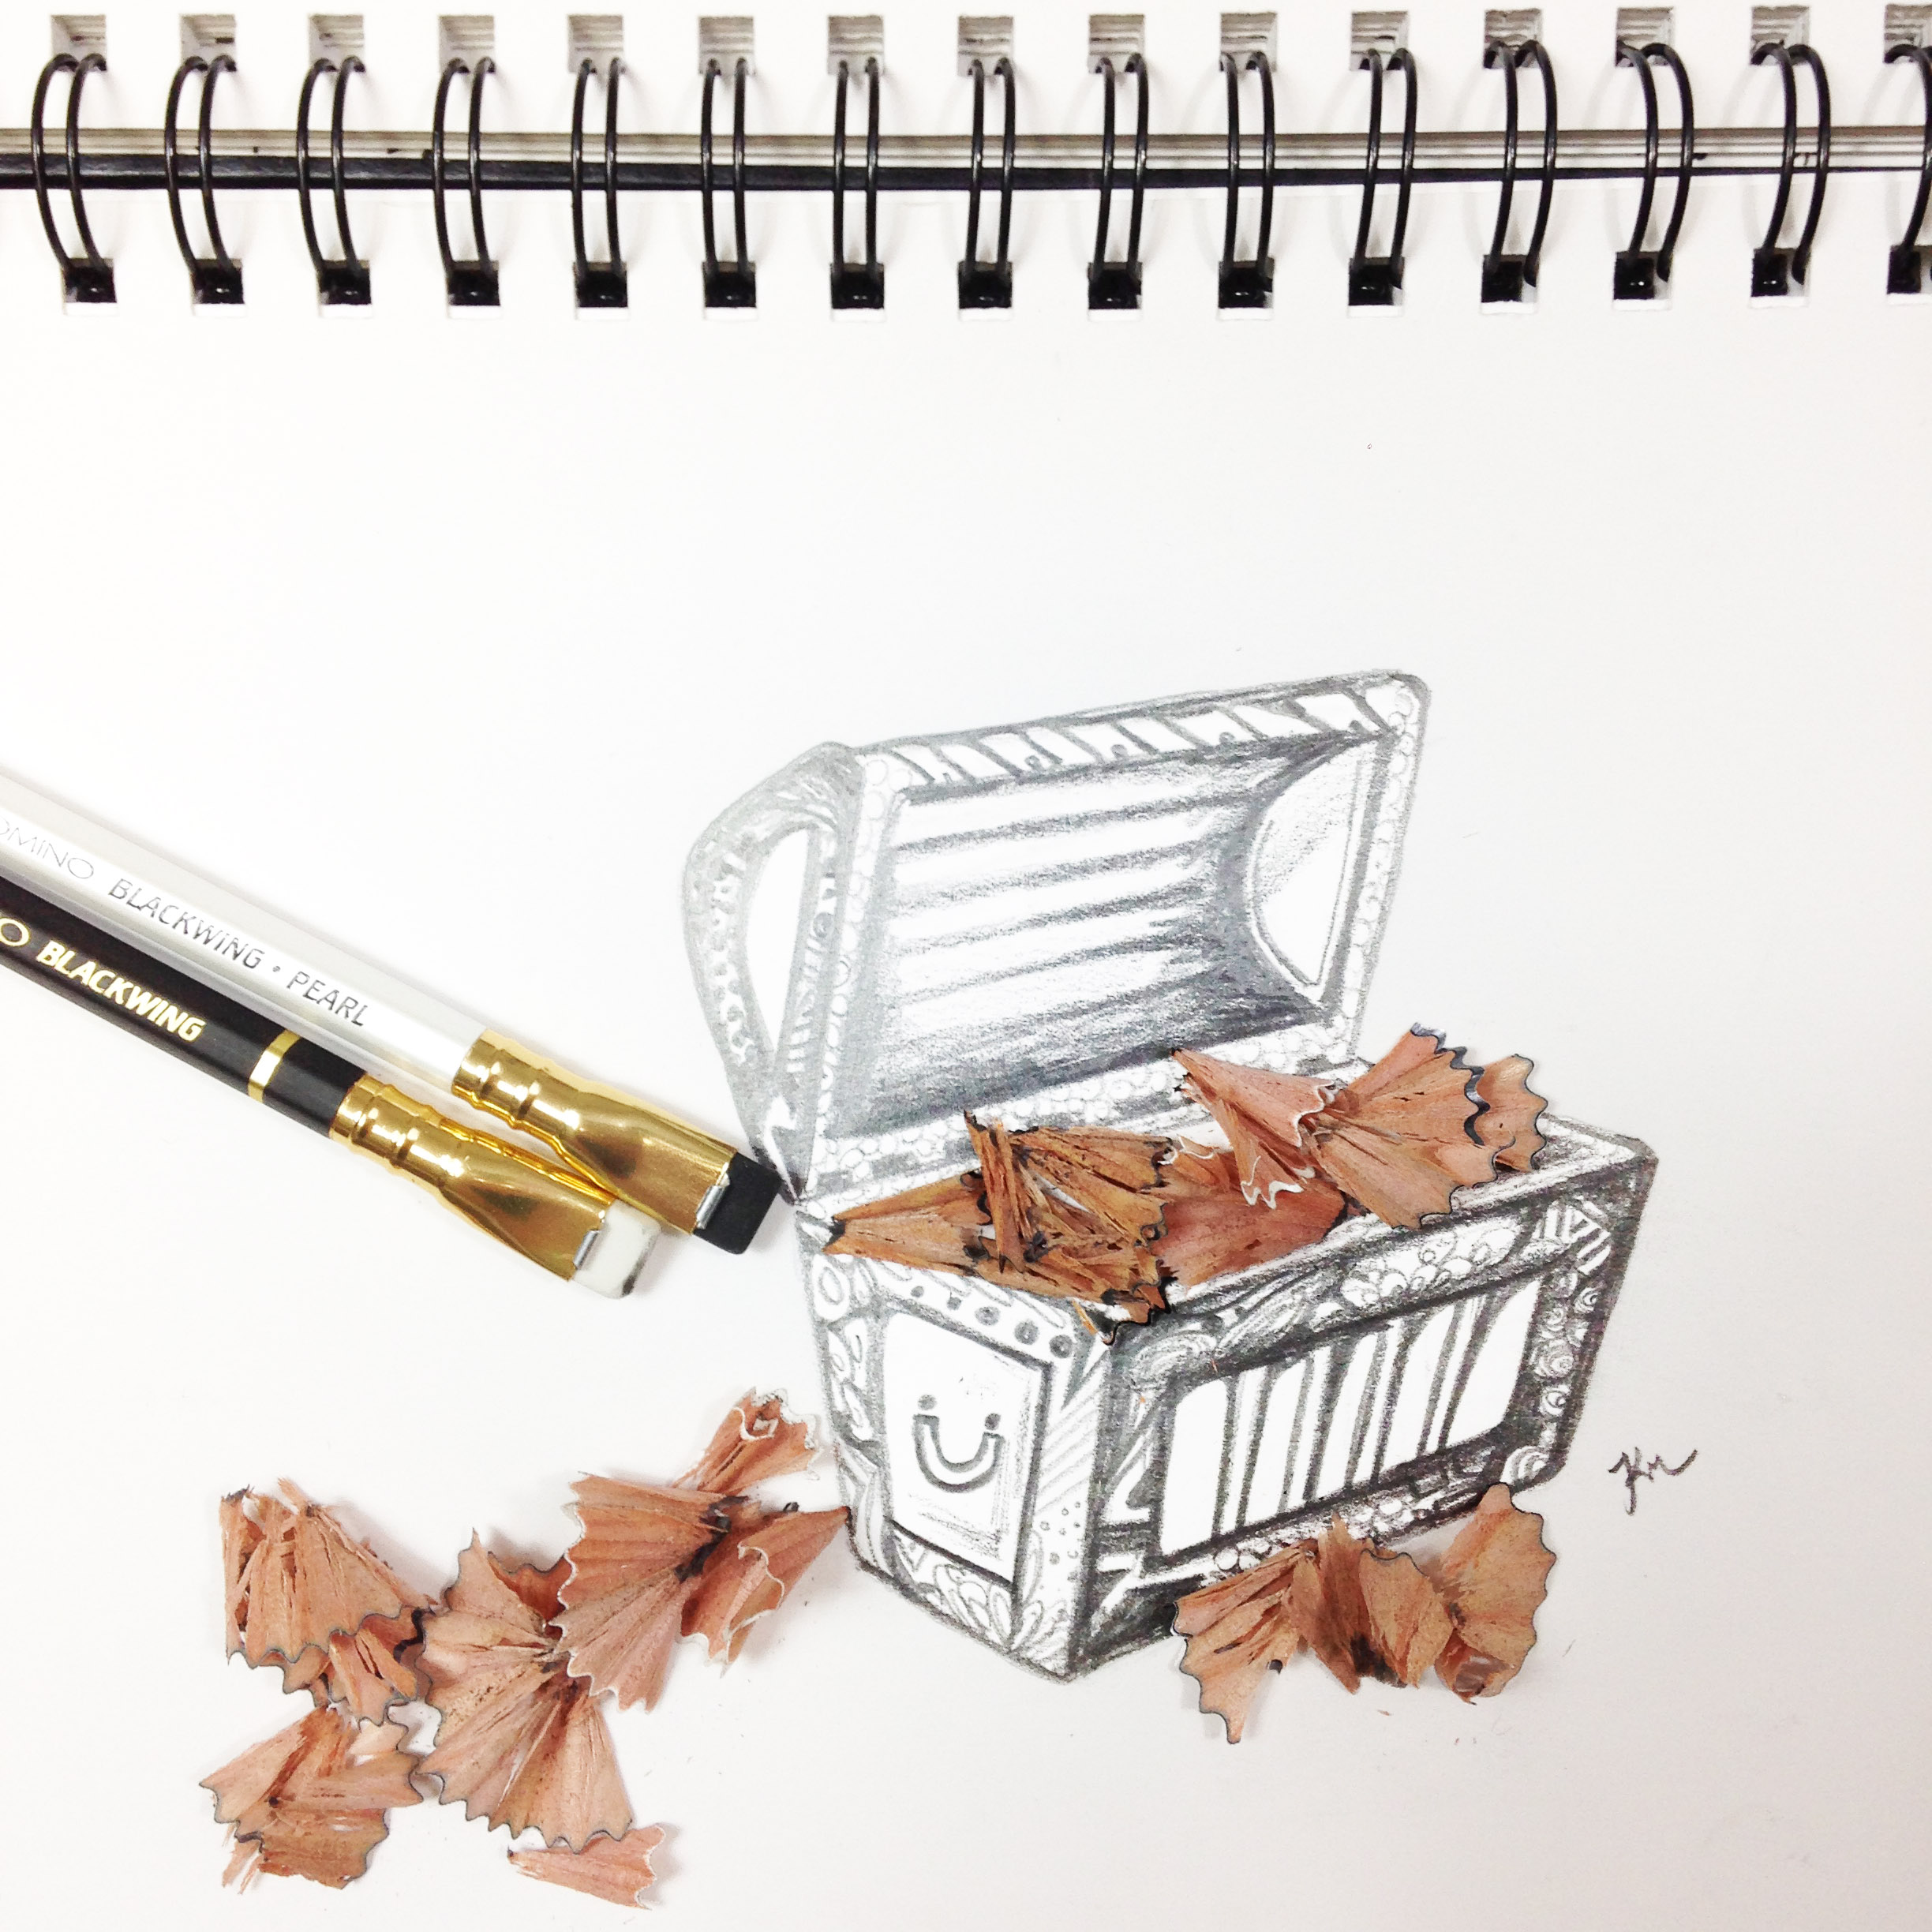 Blackwing Pencil 3 by Kelsey Montague Art.jpg